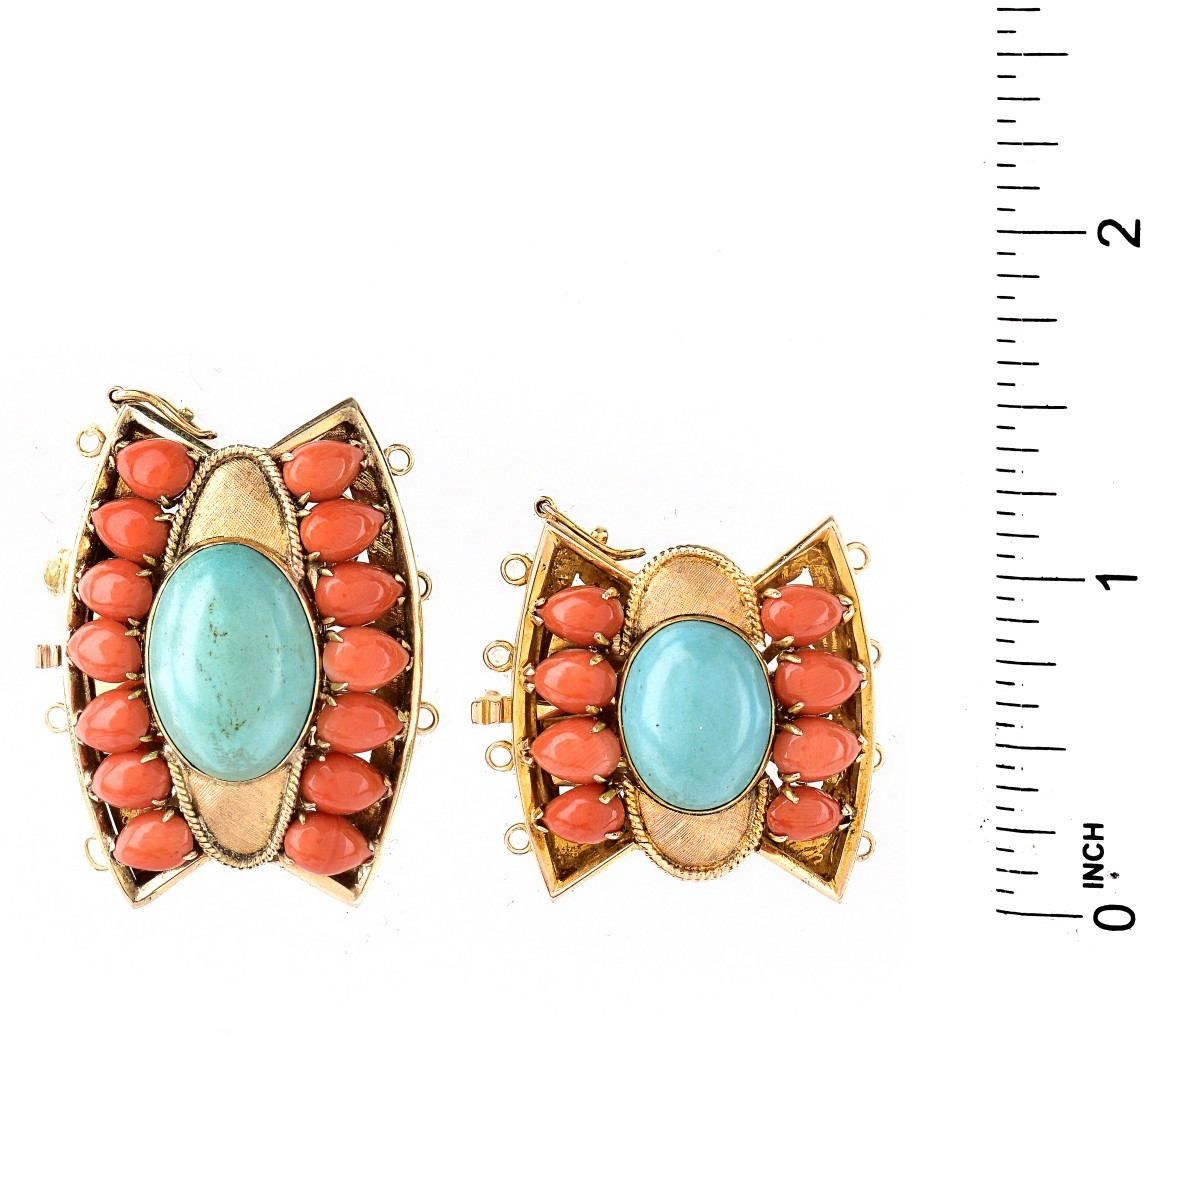 Two (2) Coral, Turquoise and 14K Gold Clasps